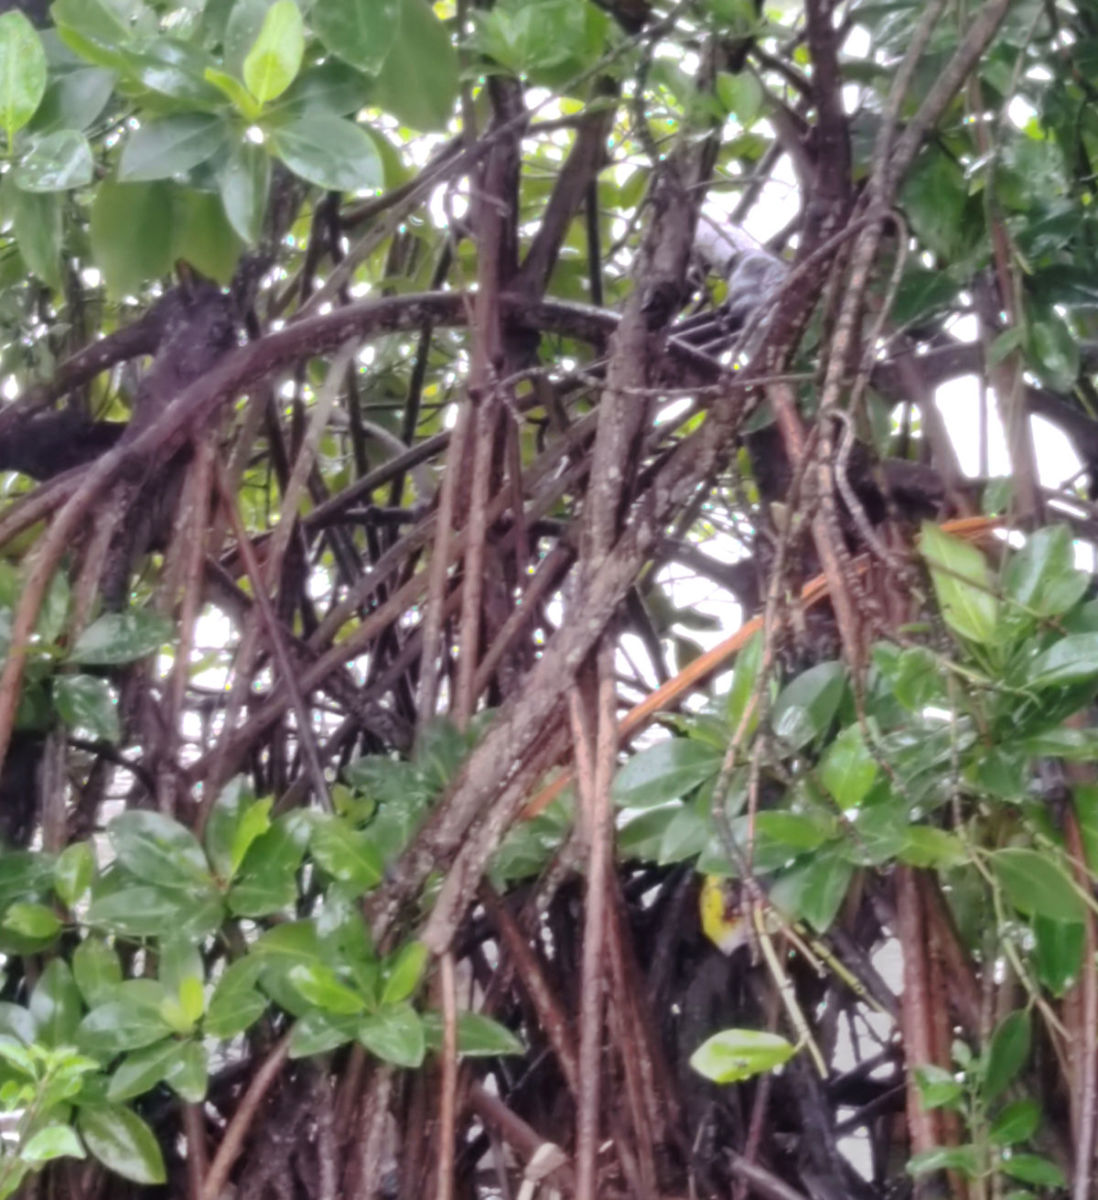 Prop-root supports the mangrove plants on marshy habitat